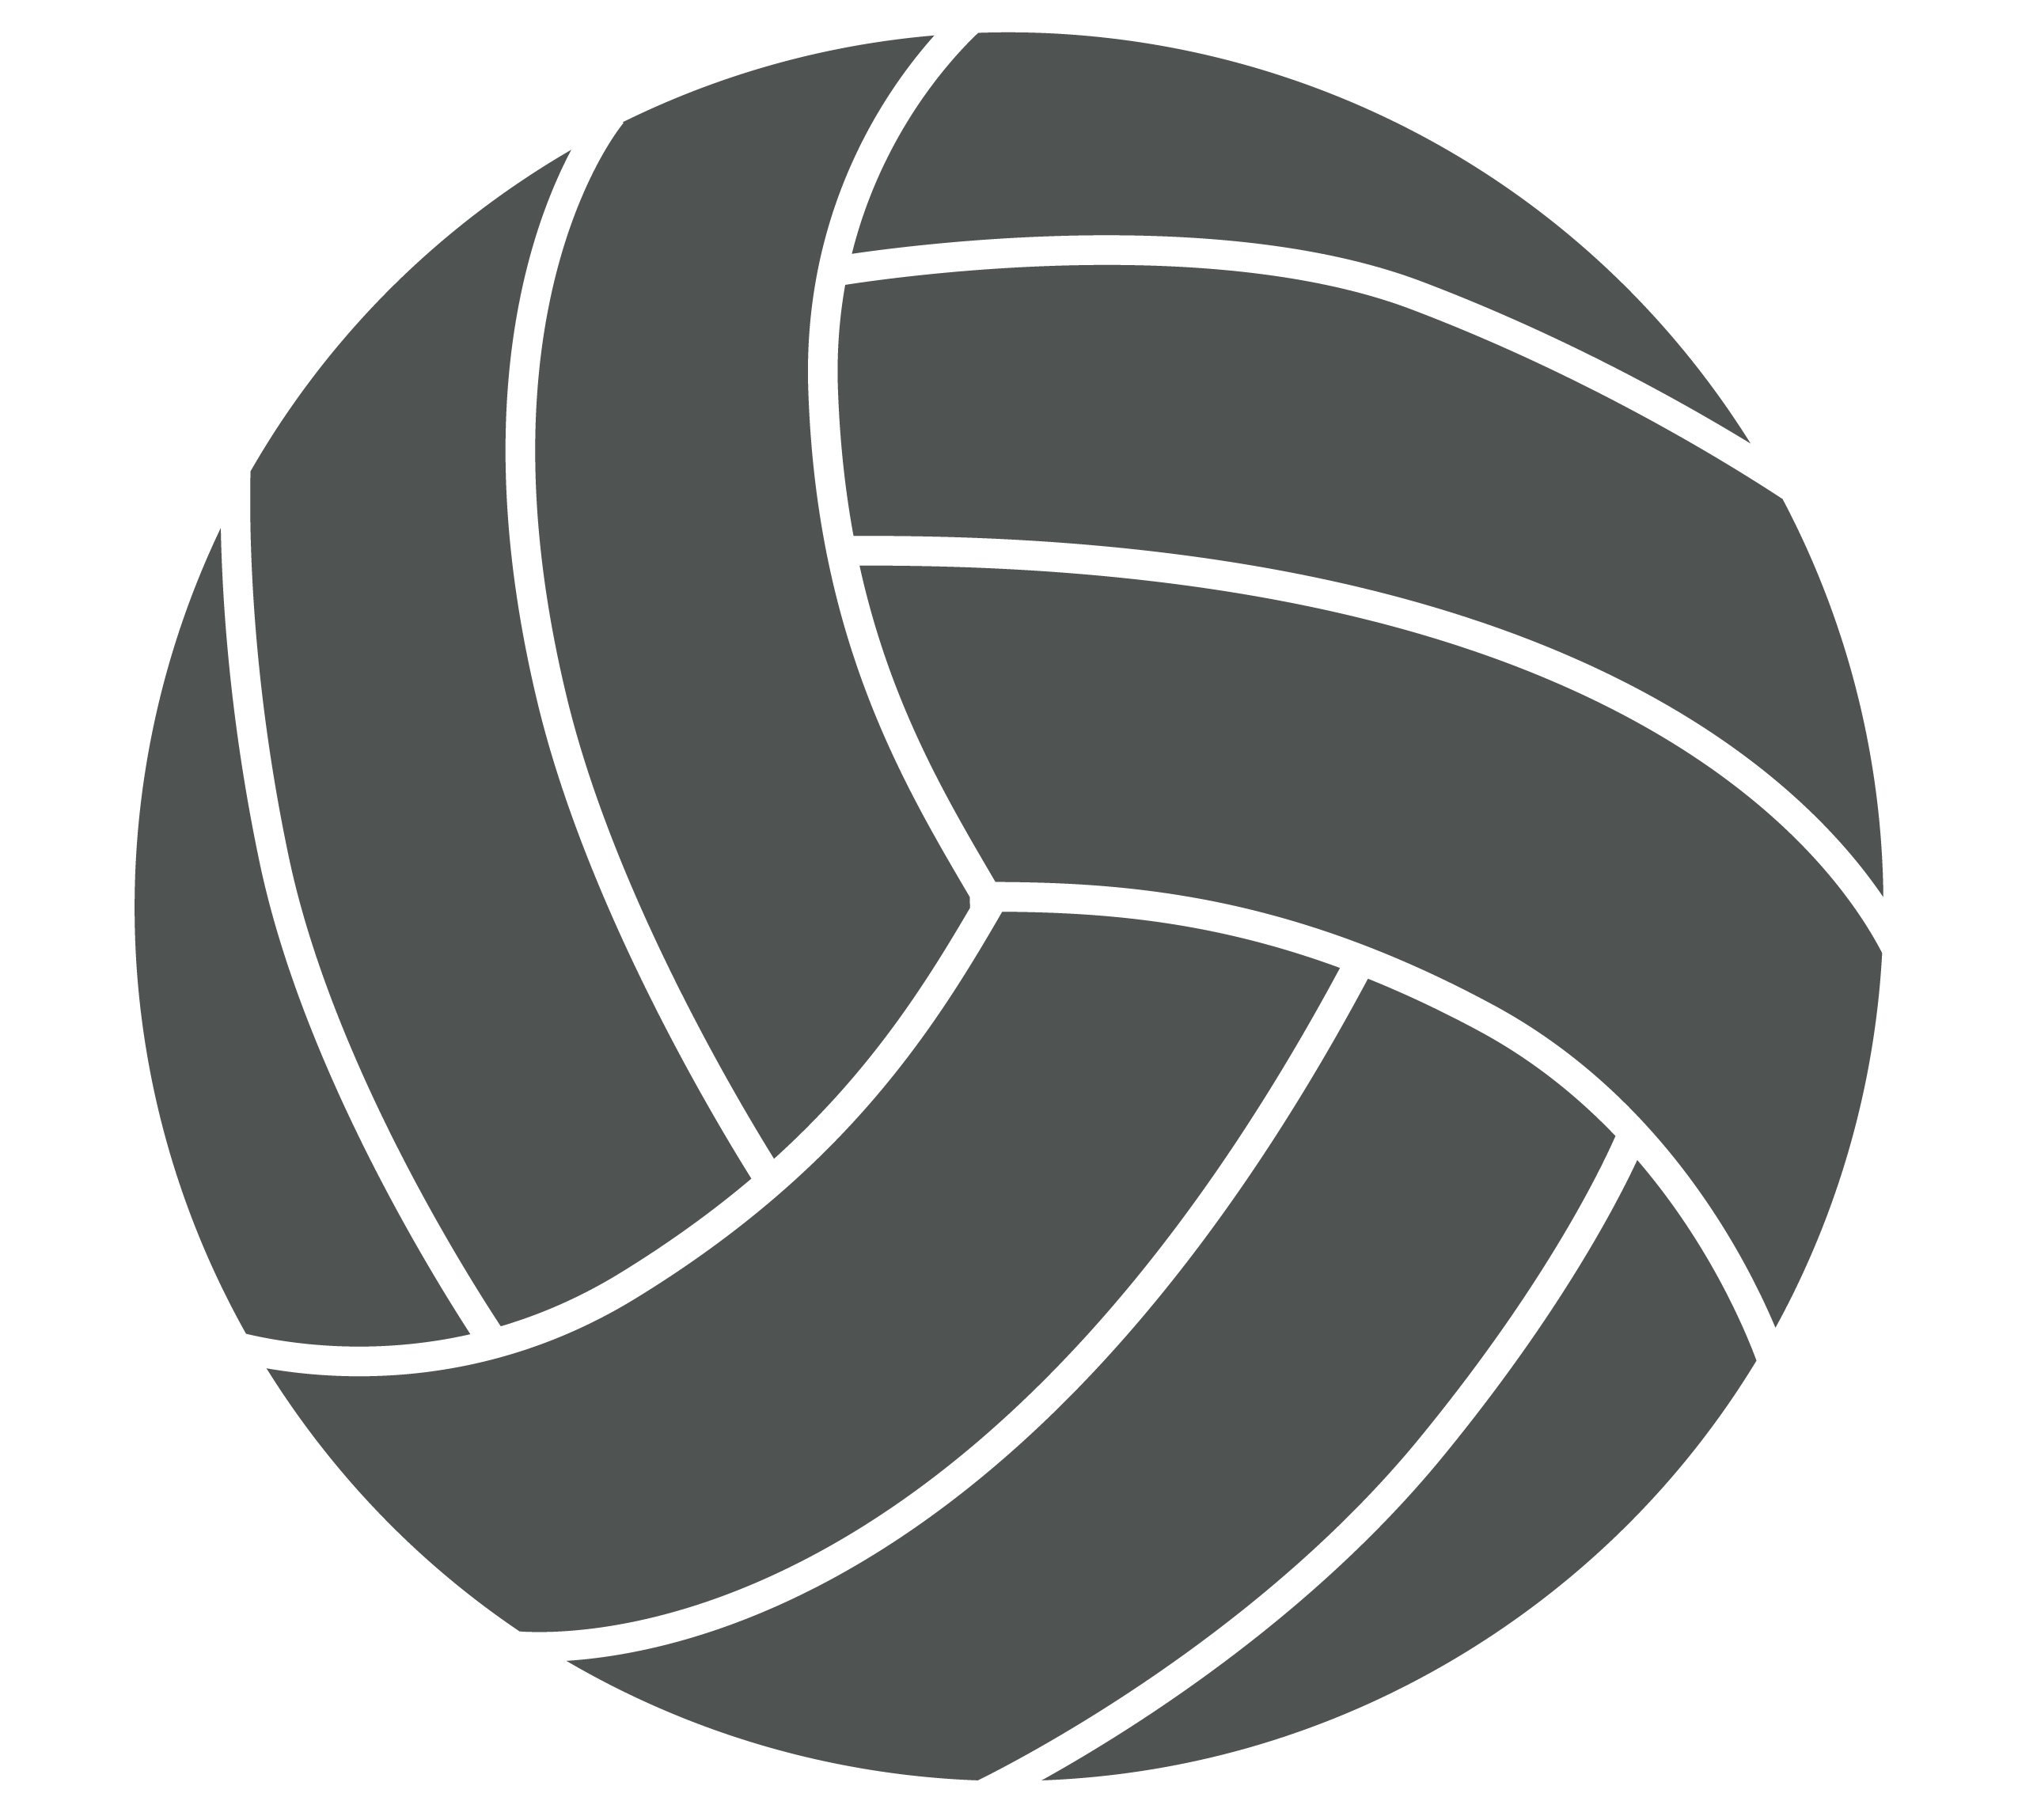 Clip art png download. Volleyball clipart grey